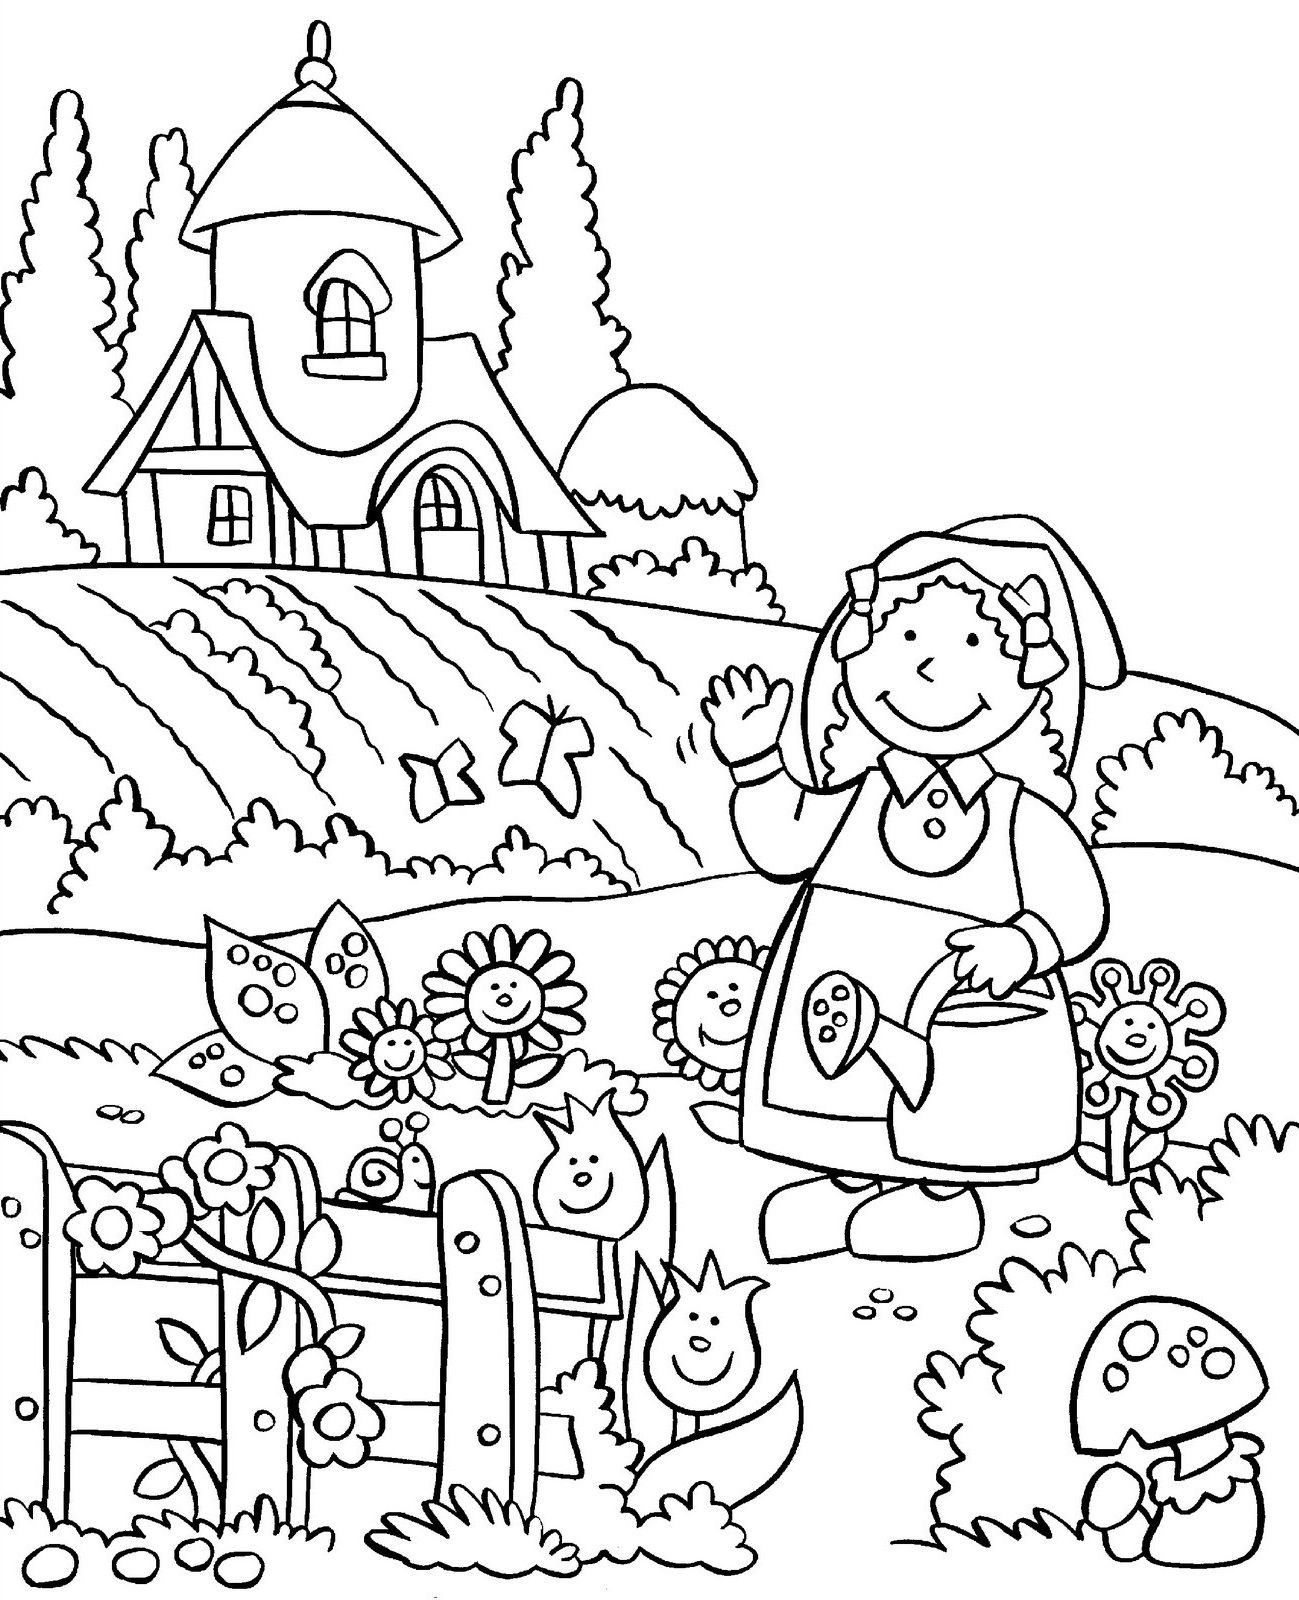 Coloring Pictures For Kids Worksheet